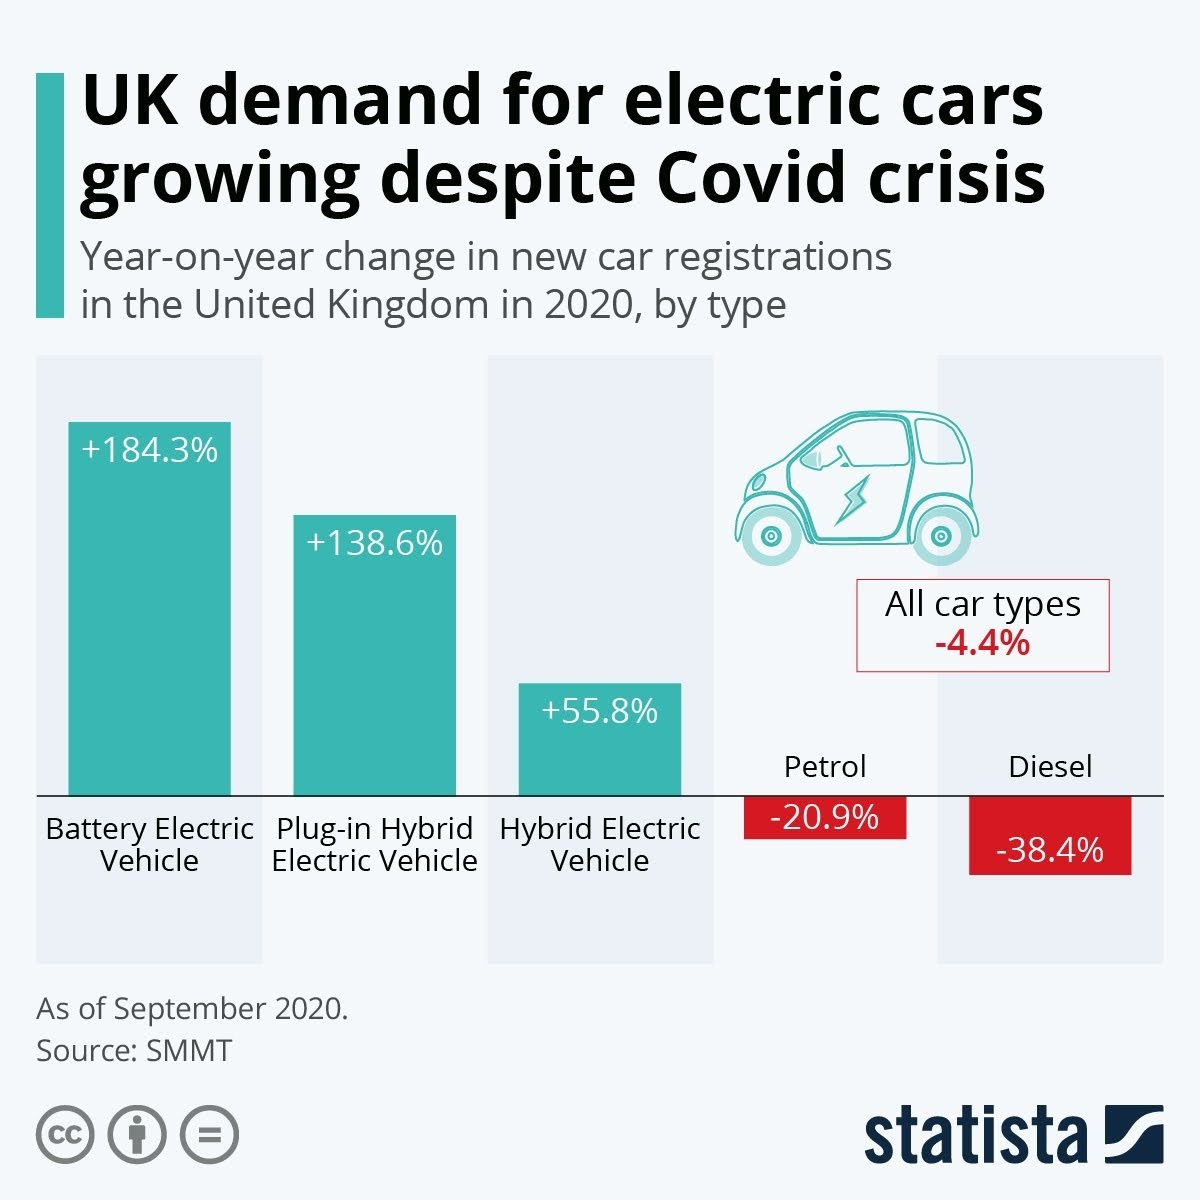 uk-demand-for-electric-cars-growing-despite-covid-crisis-infographic